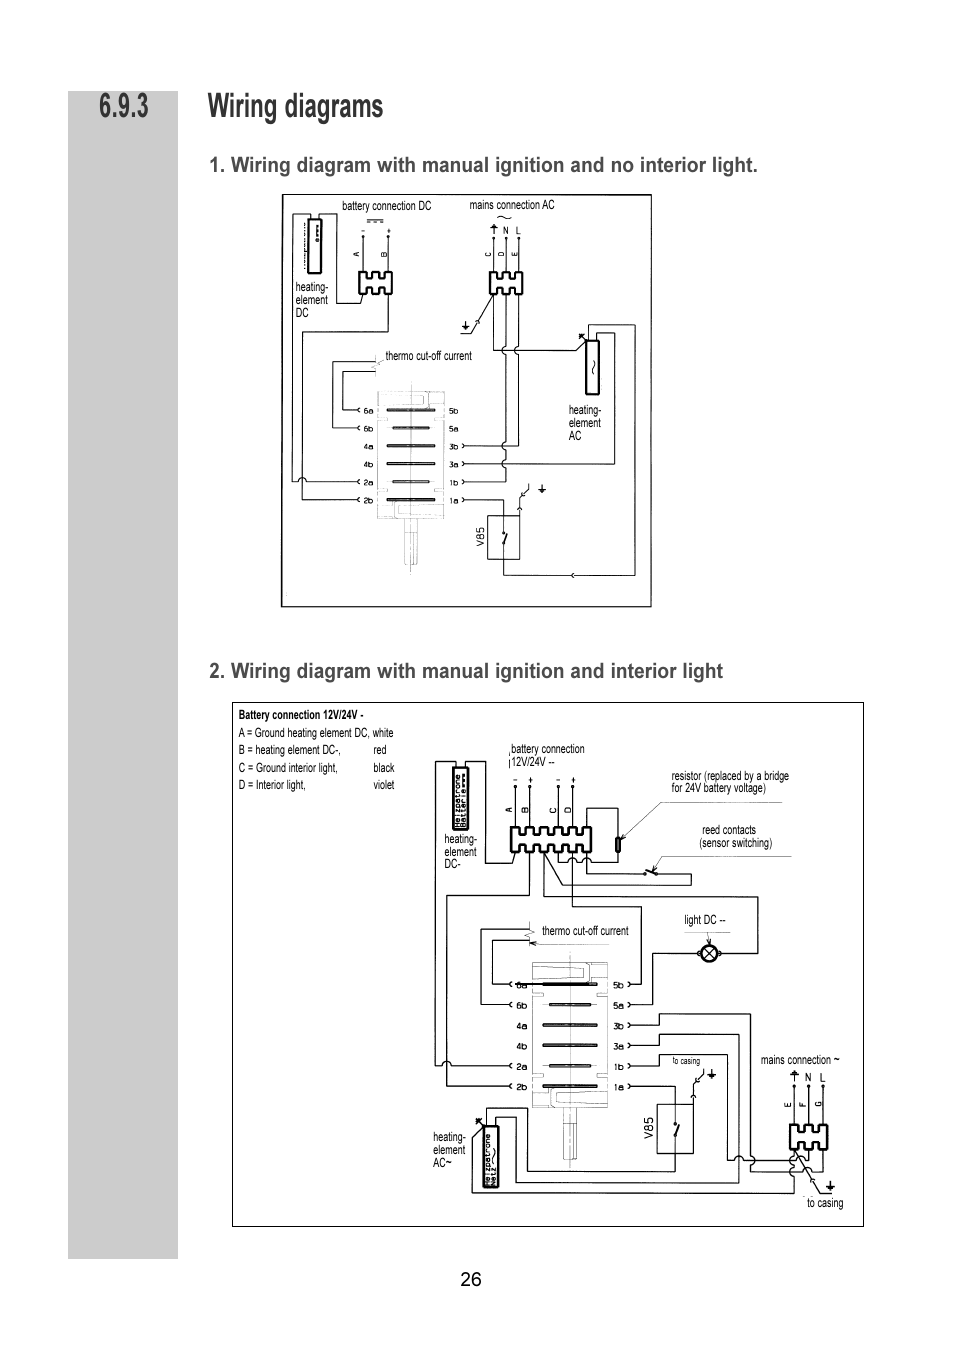 dometic rm2193 wiring diagram nephron not labeled diagrams best library hub 3310727007